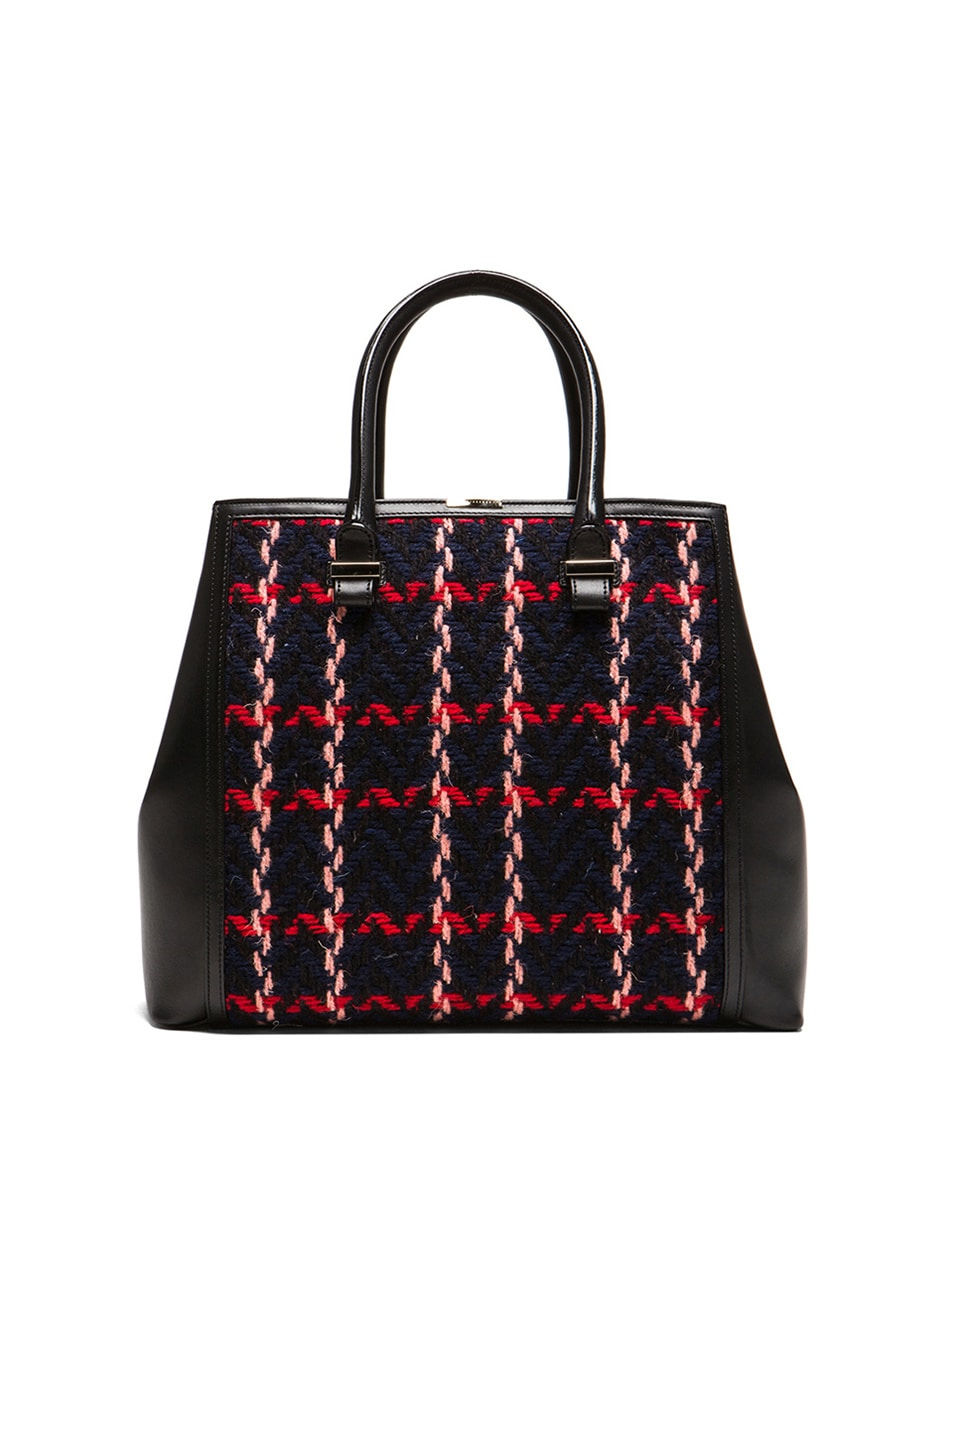 Image 1 of Victoria Beckham Liberty Tote in Black Multi